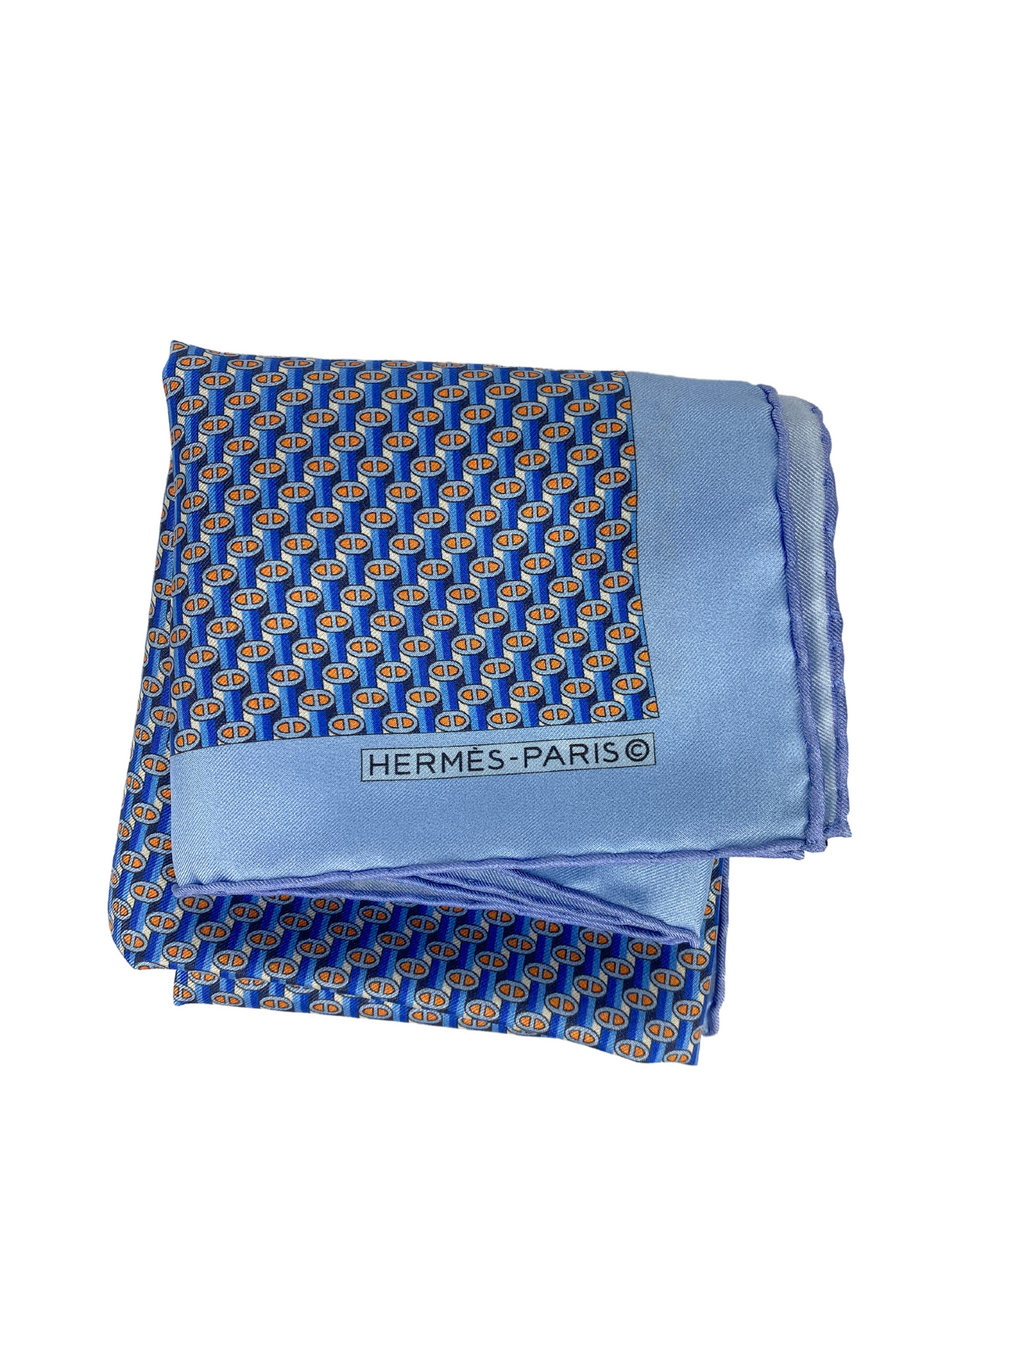 HERMÉS - LIGHT BLUE SILK POCKET SQUARE